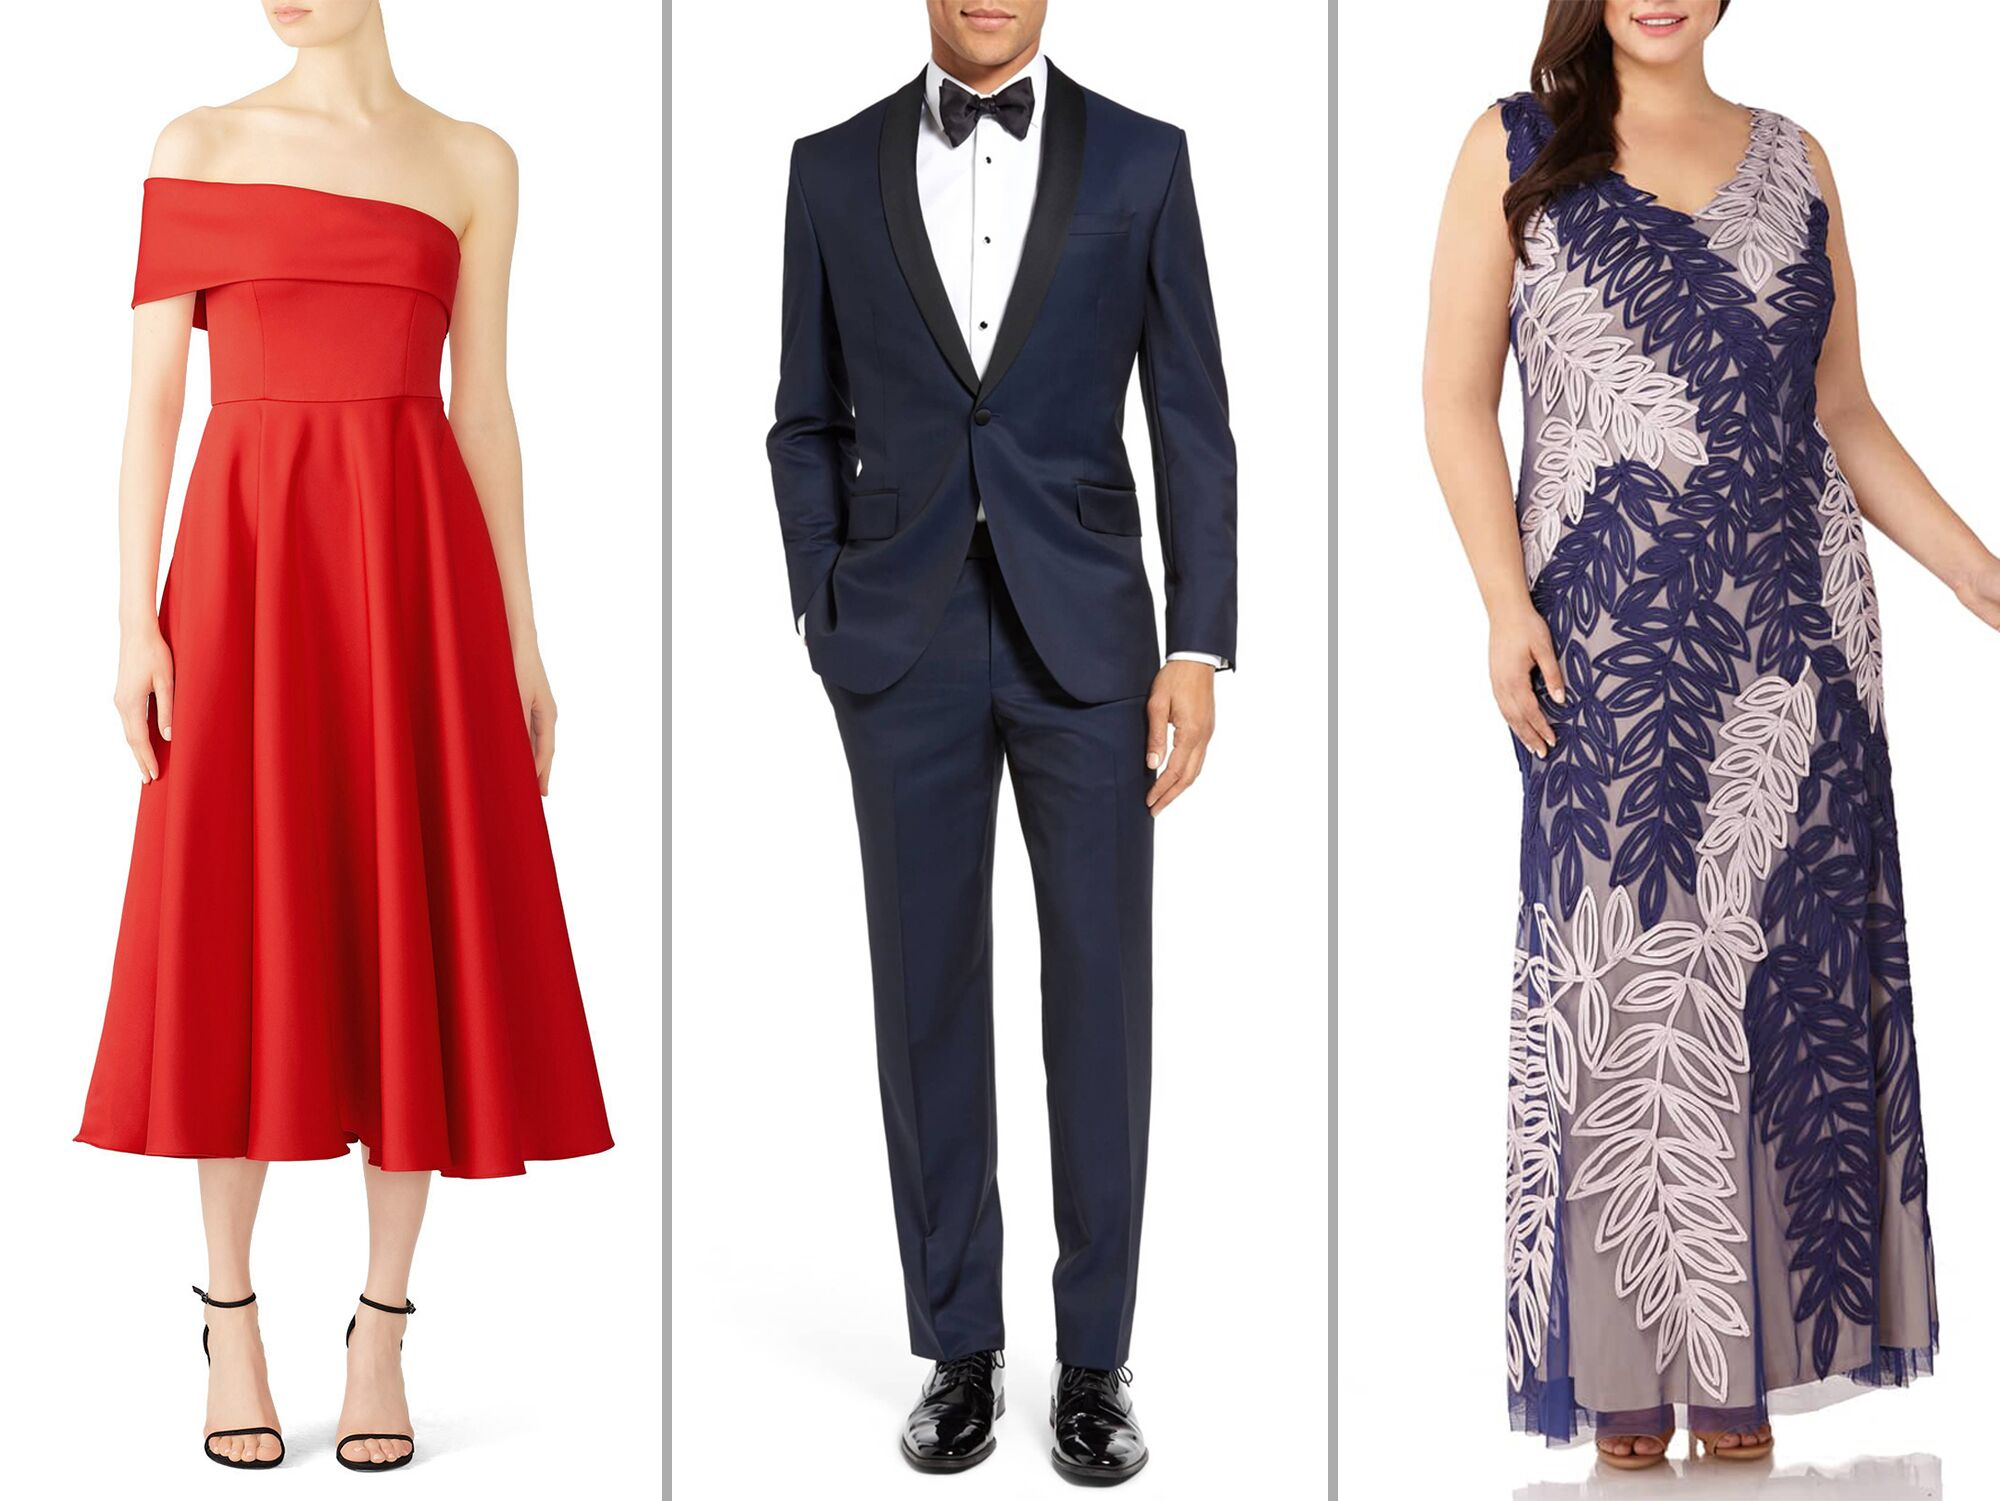 Formal Wedding Attire for Men and Women